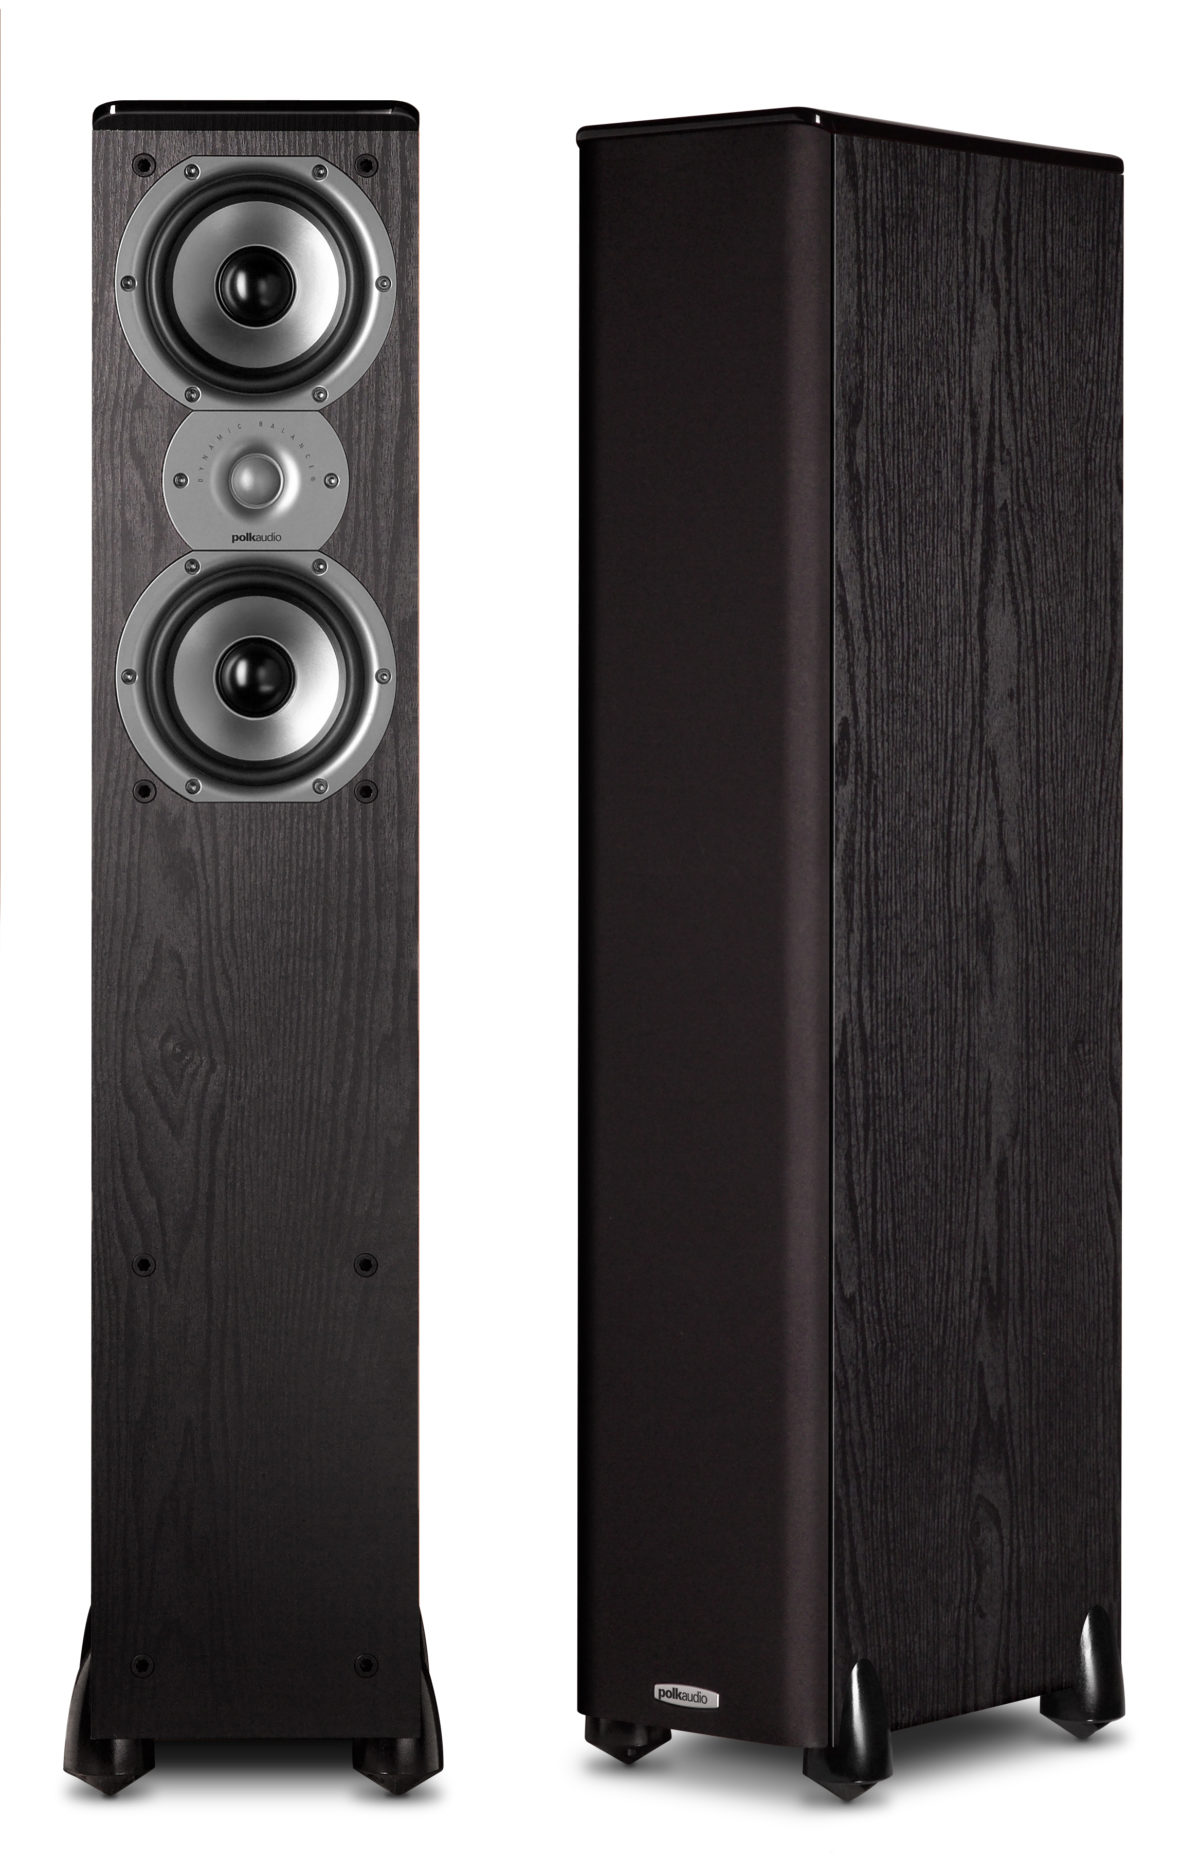 Polk Signature Series - Standlautsprecher